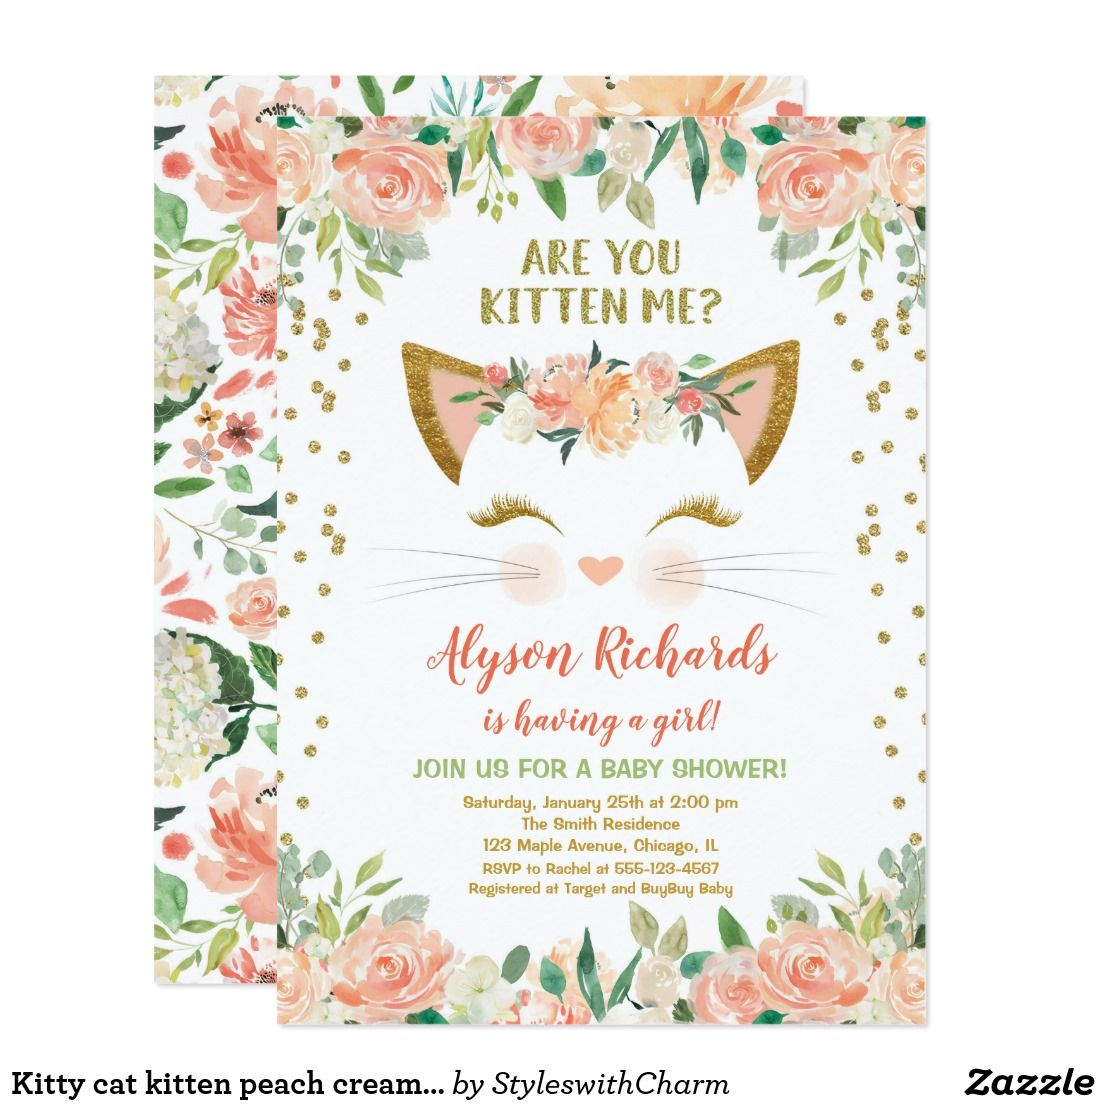 Kitty Cat Kitten Peach Cream Girl Baby Shower Invitation Zazzle Com Girl Birthday Party Invitations Cat Birthday Party Invitations Baby Shower Invites For Girl